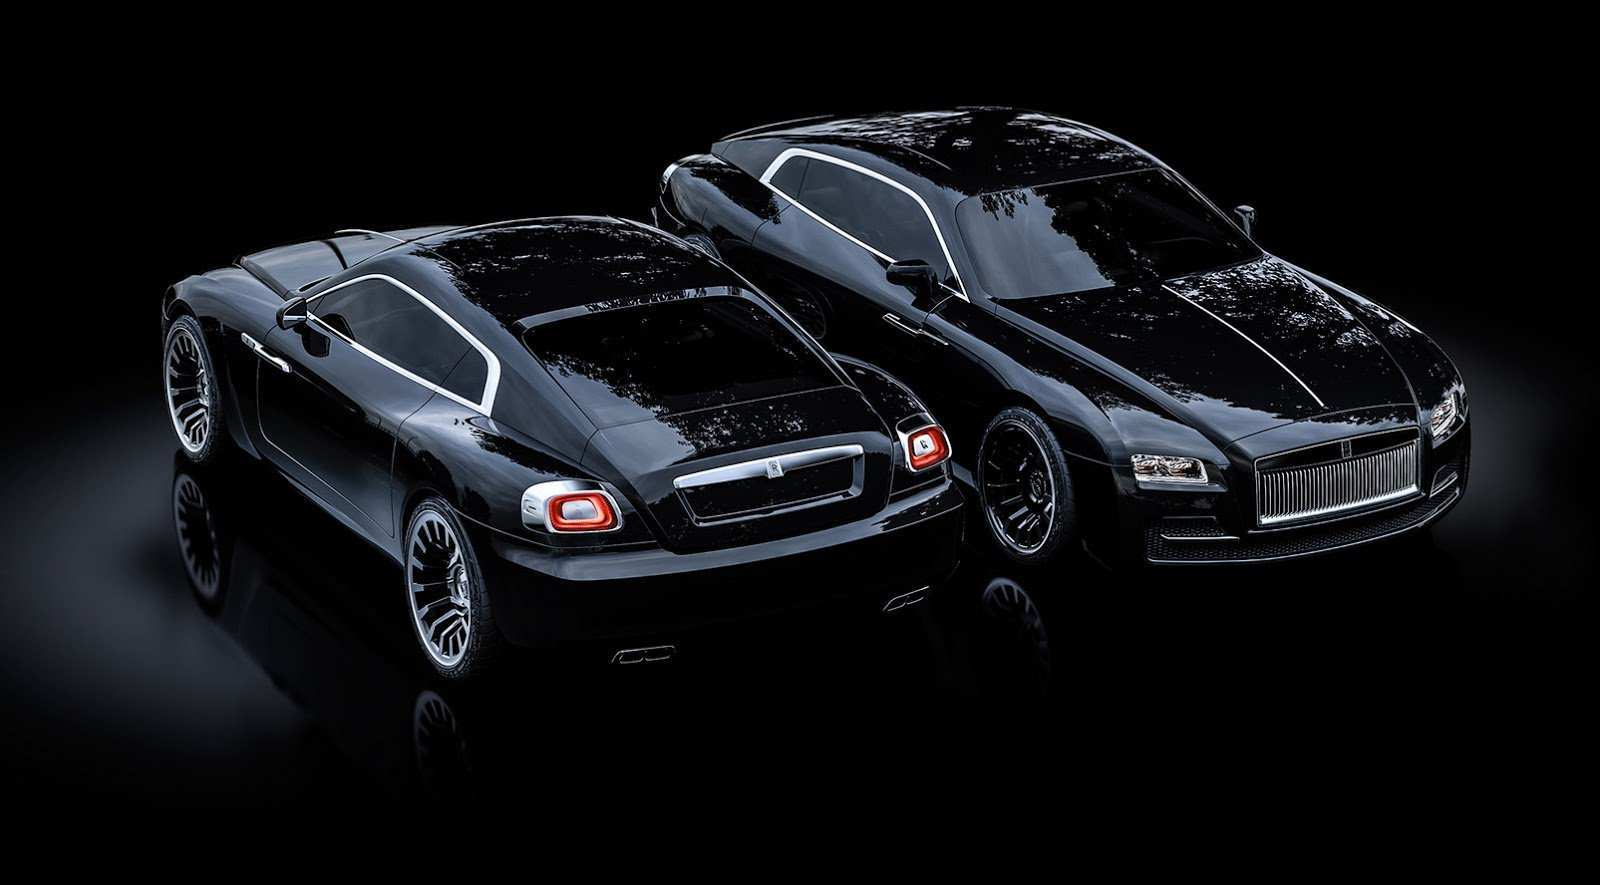 75 Concept of 2020 Rolls Royce Wraith Pictures with 2020 Rolls Royce Wraith